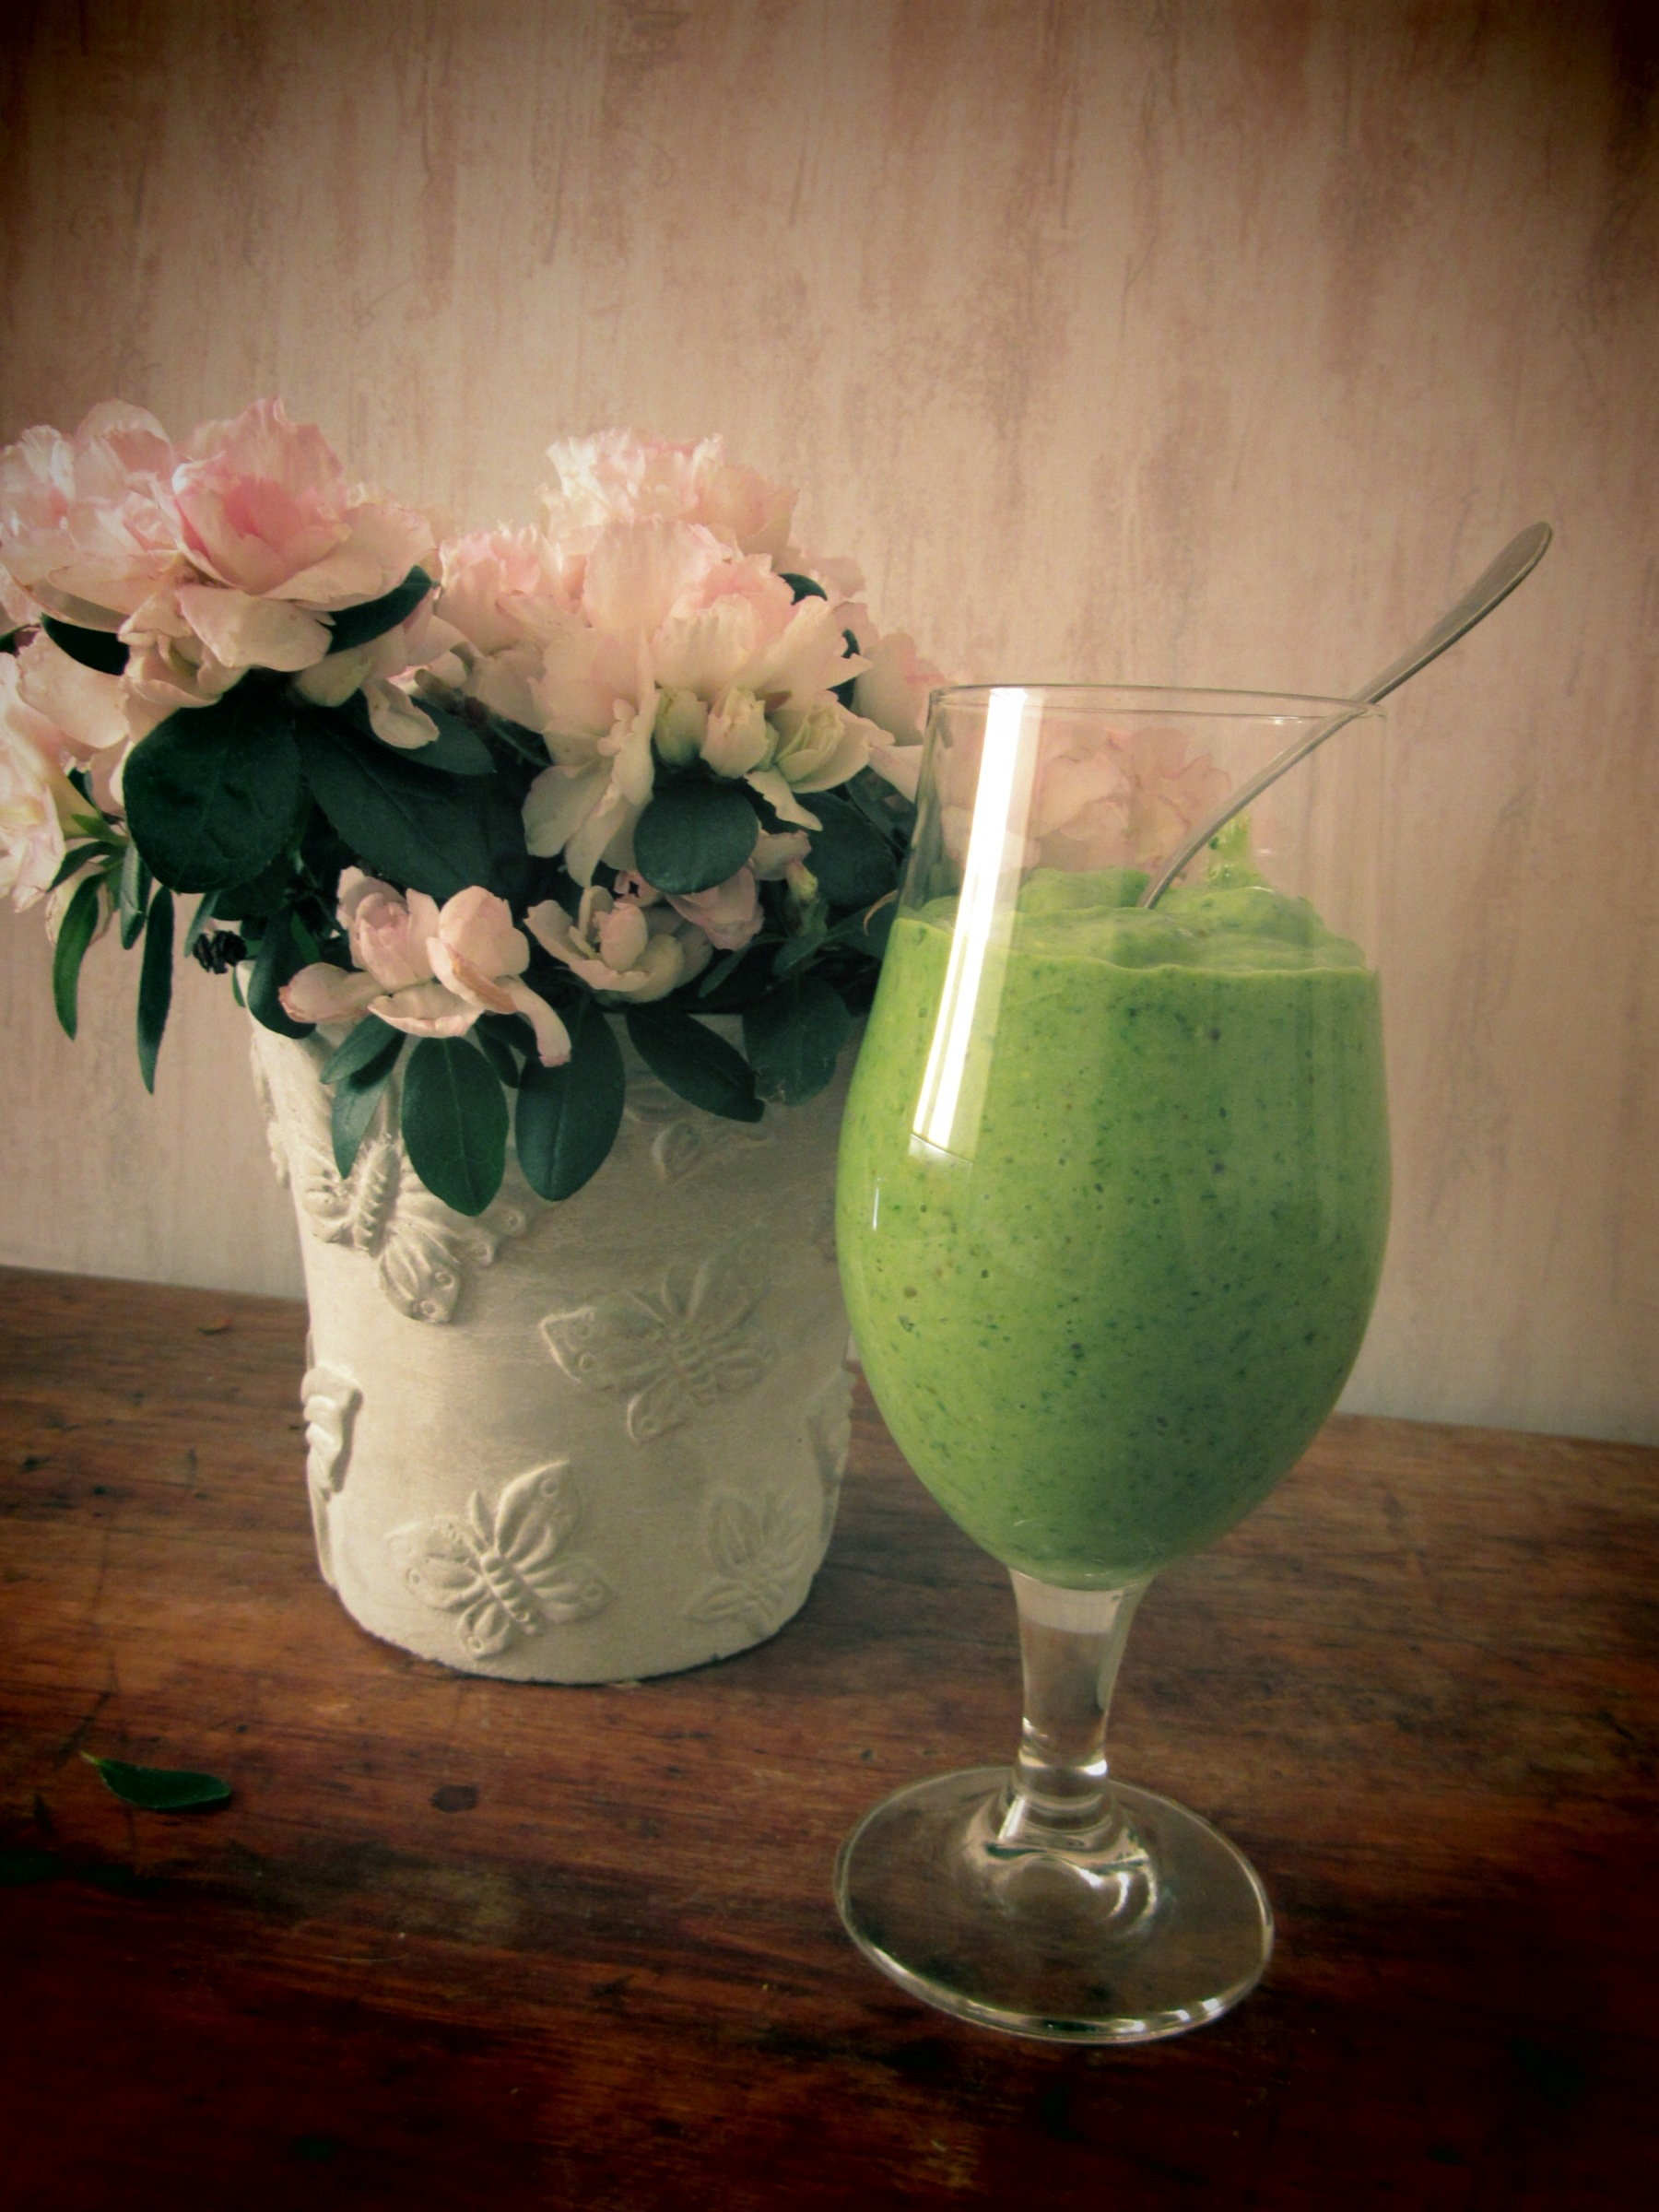 500 (!) calorie DAY STARTER smoothie with spinach, avocado, banana and dates